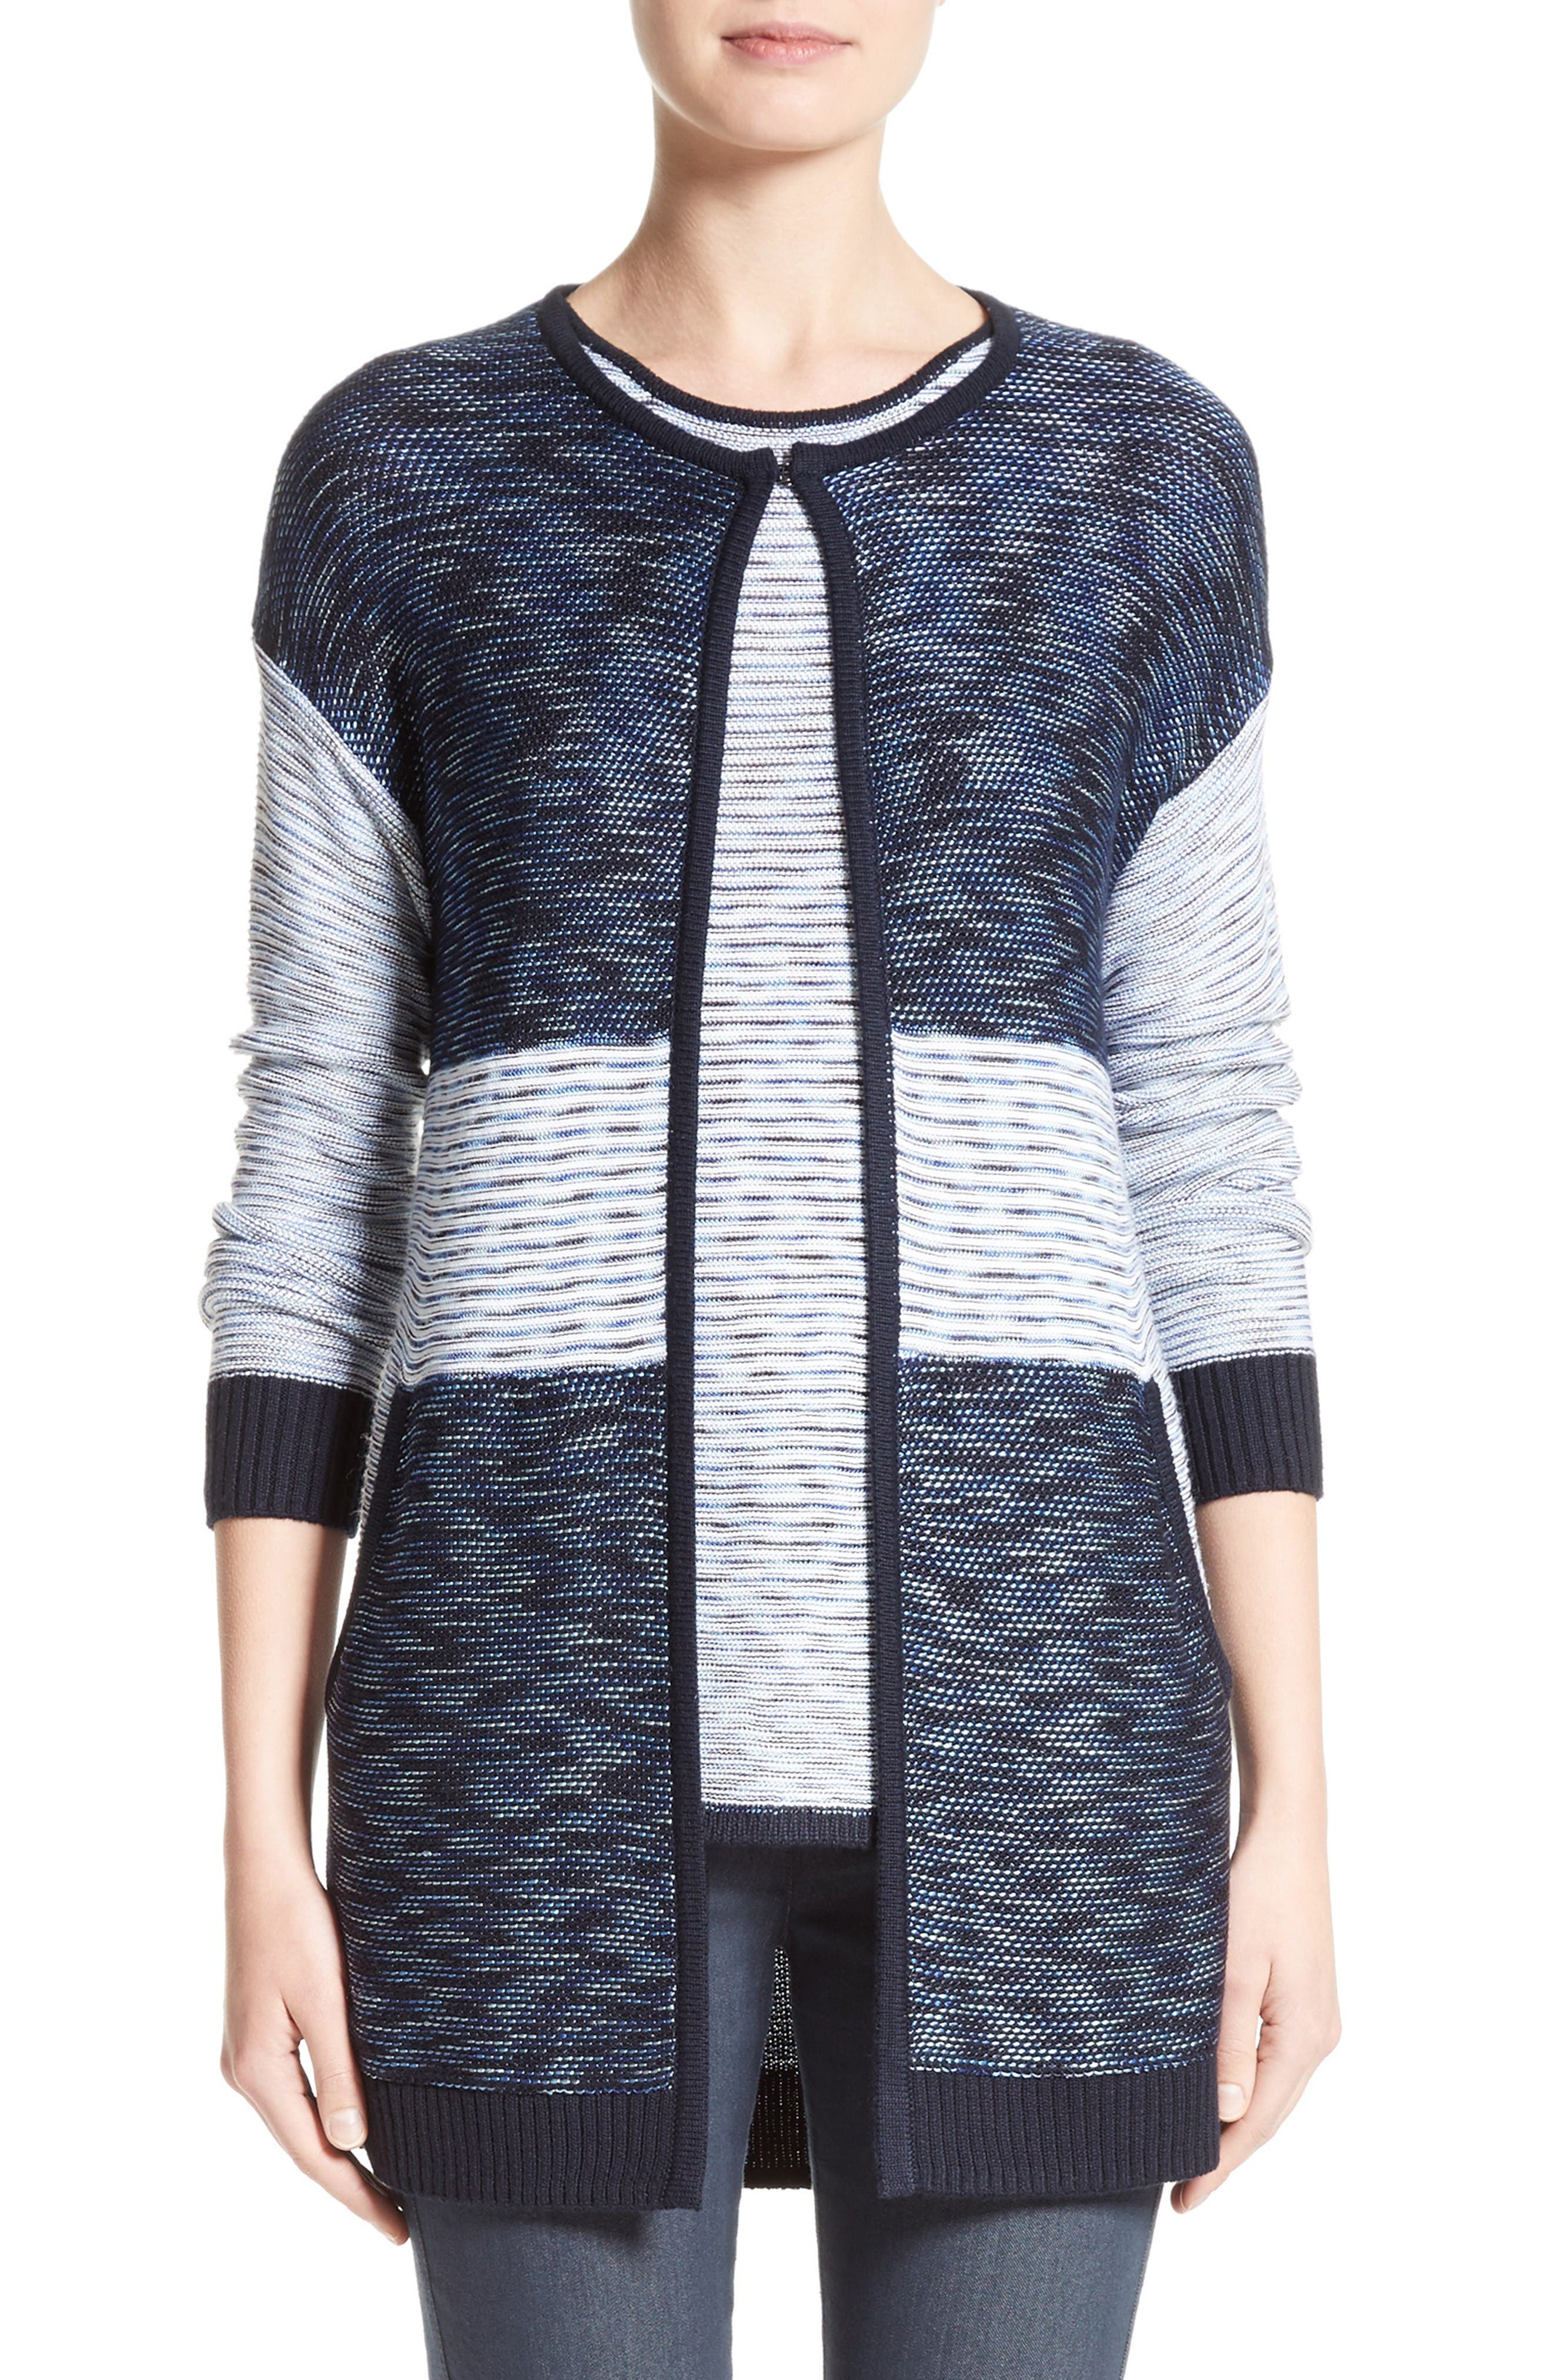 Chambray Effect Links Knit Cardigan,                         Main,                         color, Bianco/ Navy Multi